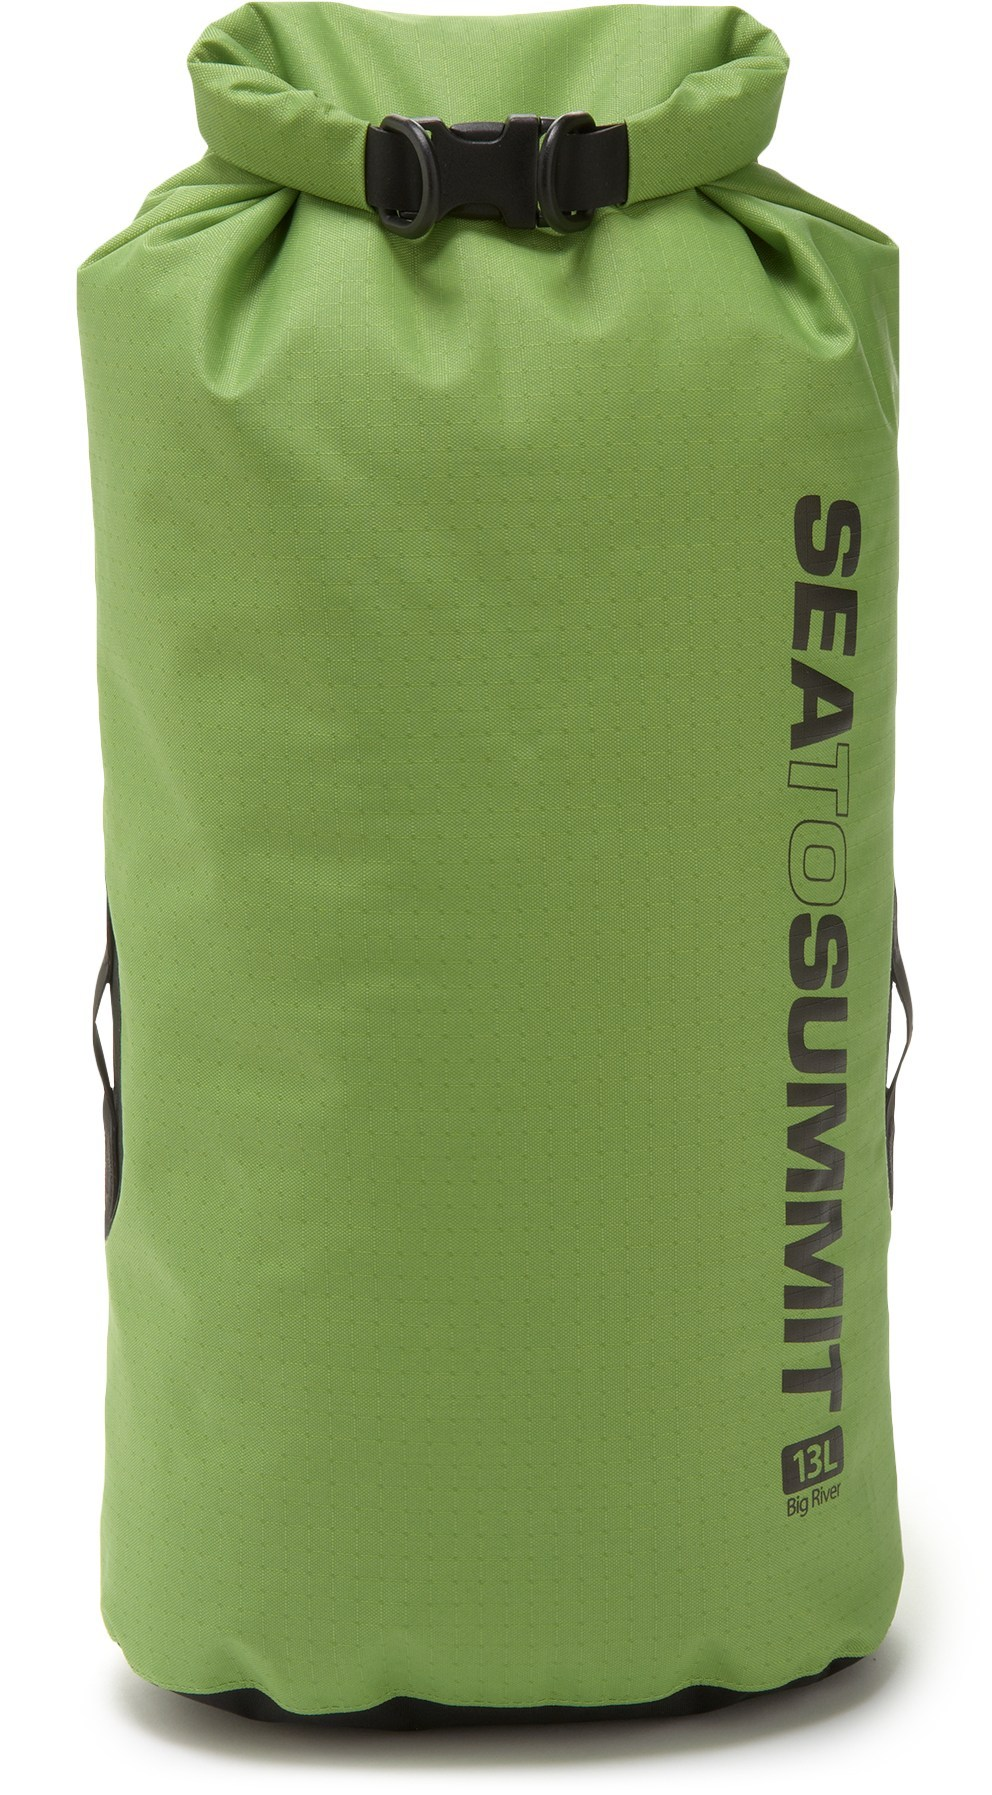 Sea to Summit Big River Dry Bag - 13L